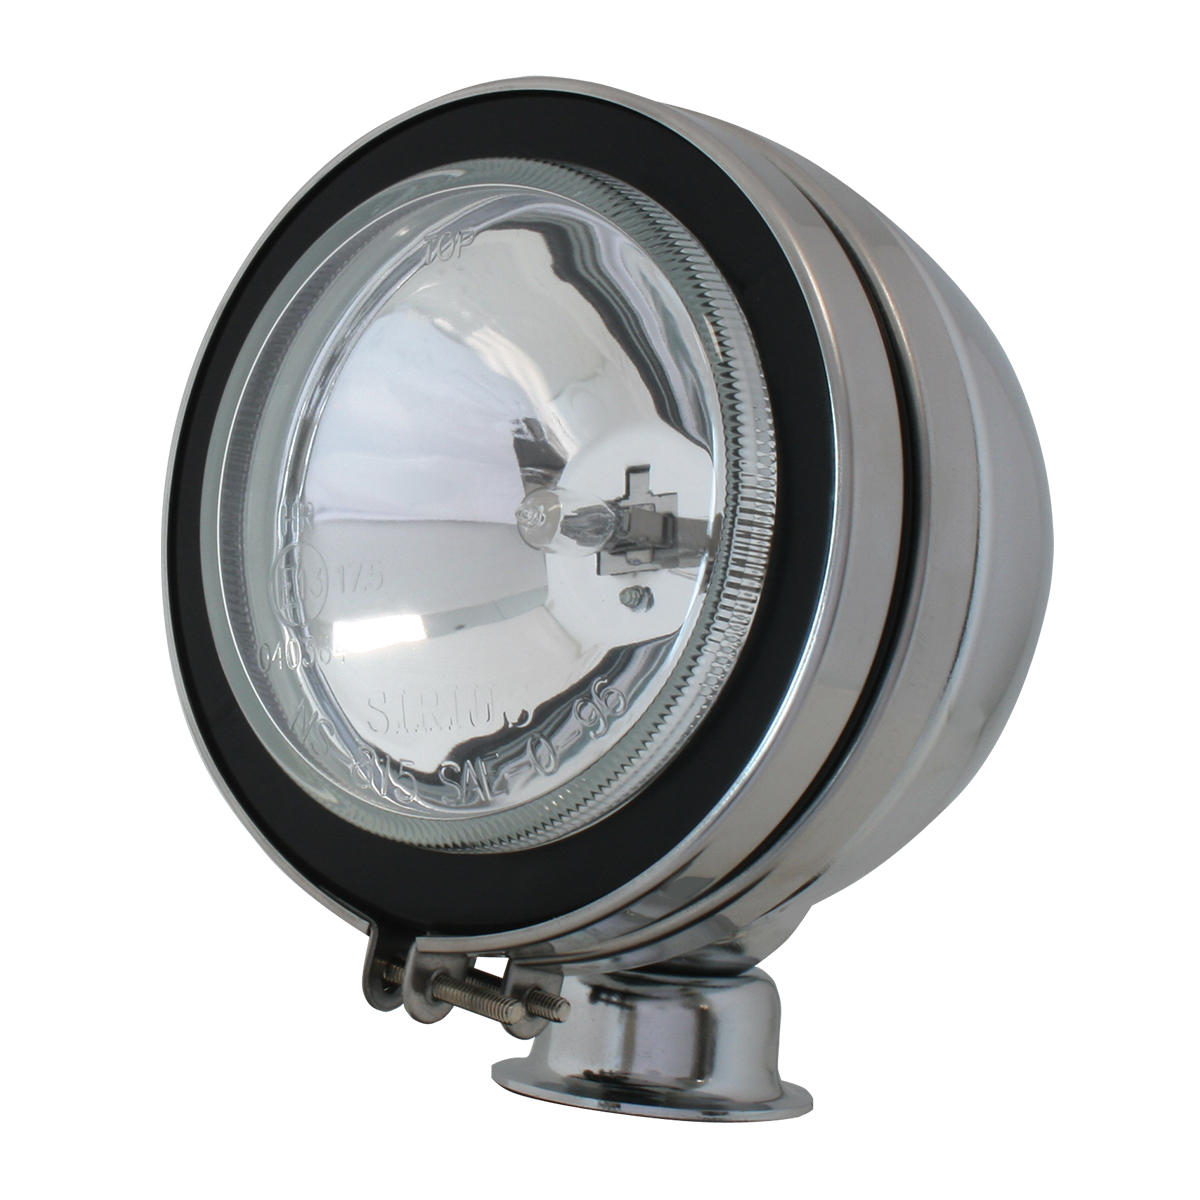 "#80632 5"" Chrome Plated Off-Road Light 100 watts - Clear"